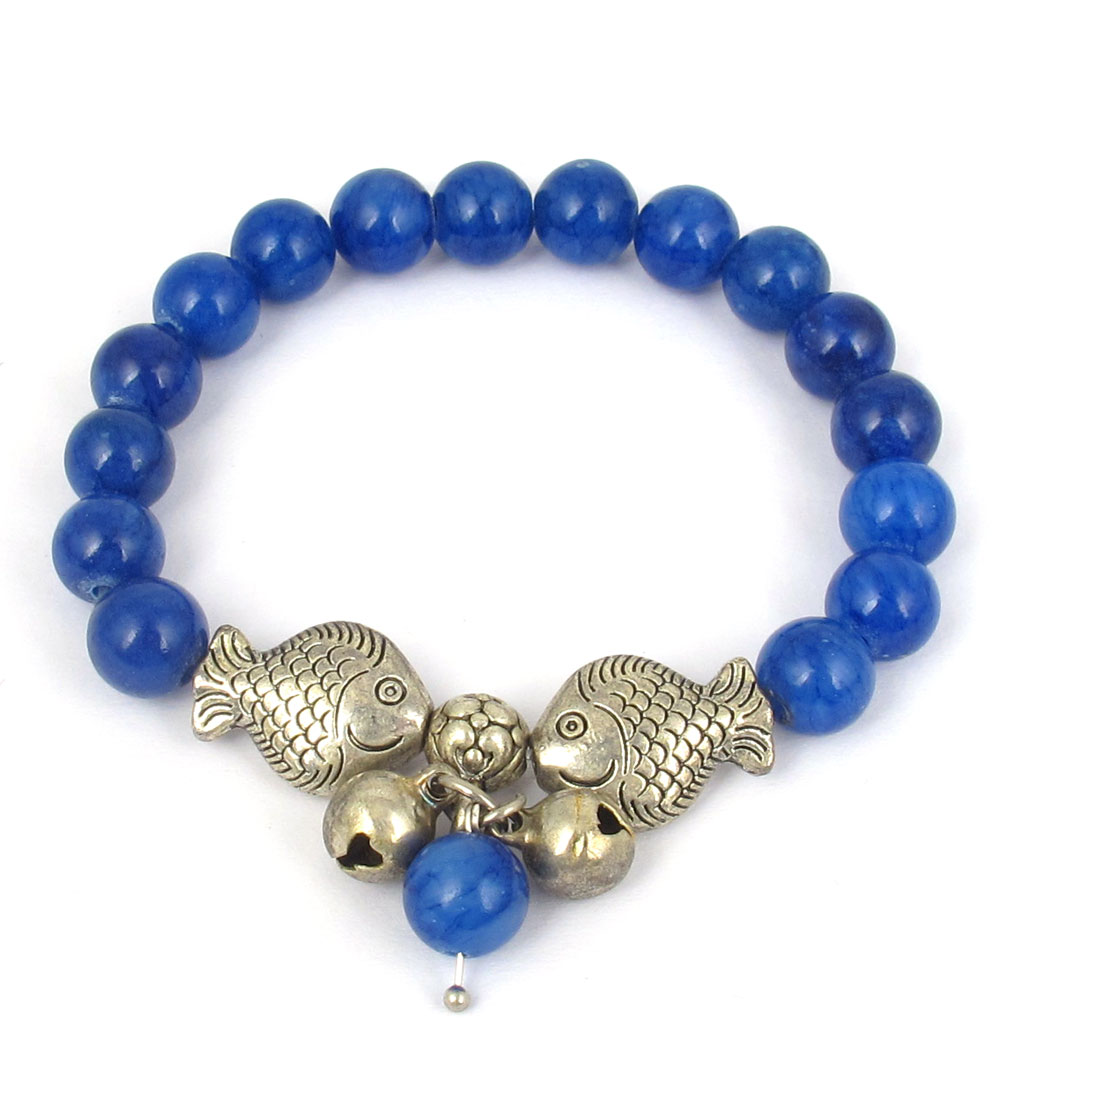 Fish Detail Round Opal Bead Wrist Ornament Bangle Bracelet Navy Blue Silver Tone for Women